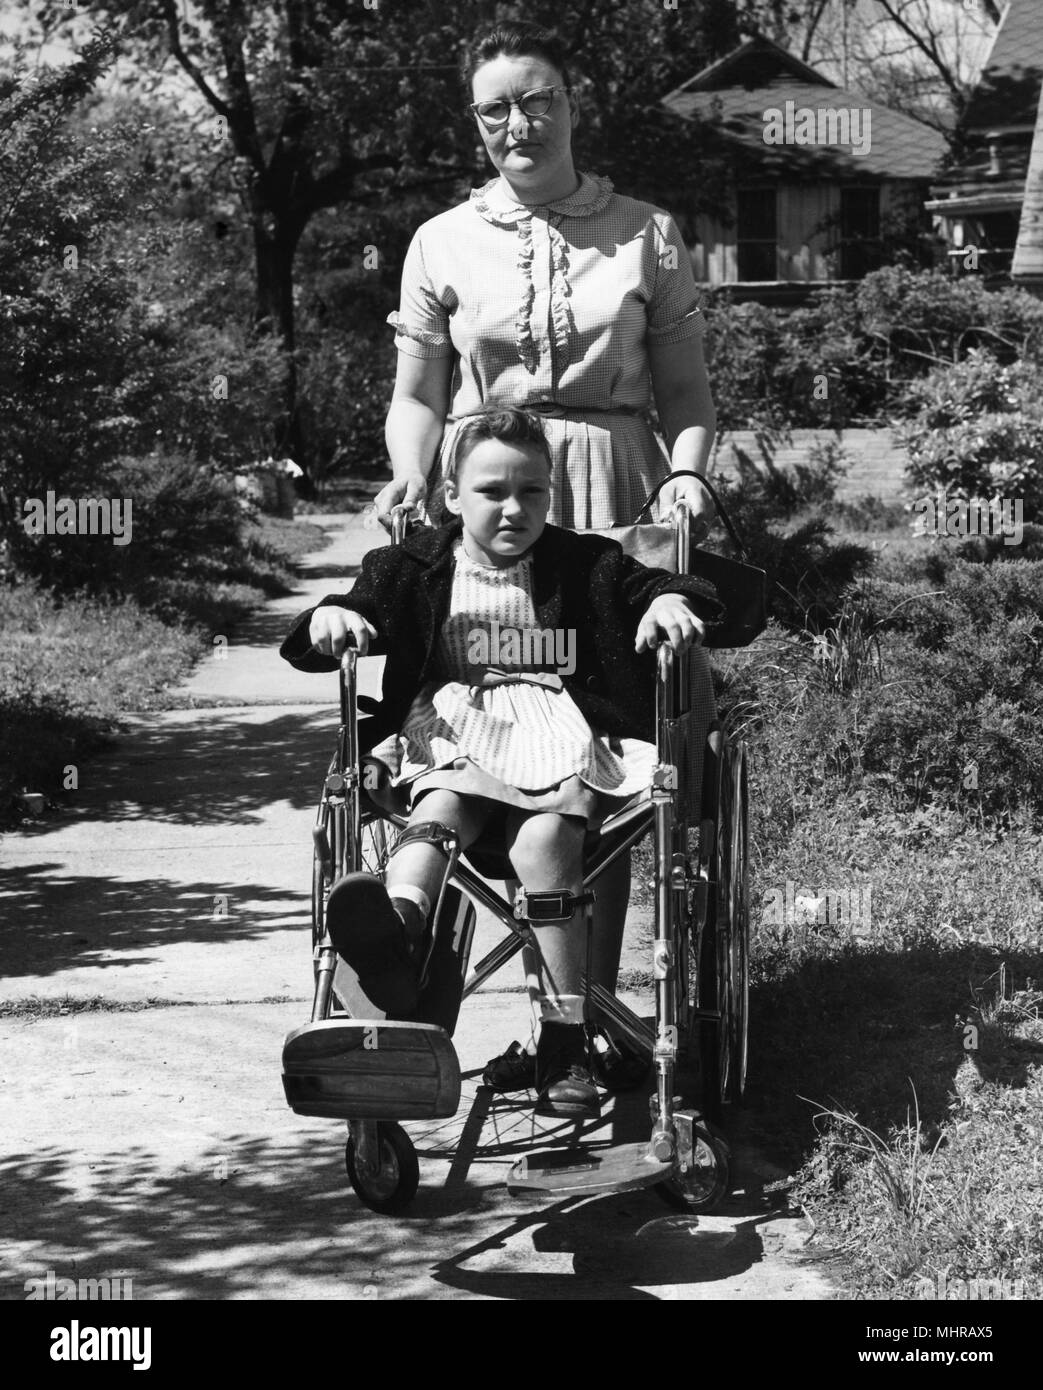 Young woman pushes a child in a wheelchair, image used to encourage individuals to receive polio vaccinations, 1968. Image courtesy Centers for Disease Control (CDC). () - Stock Image